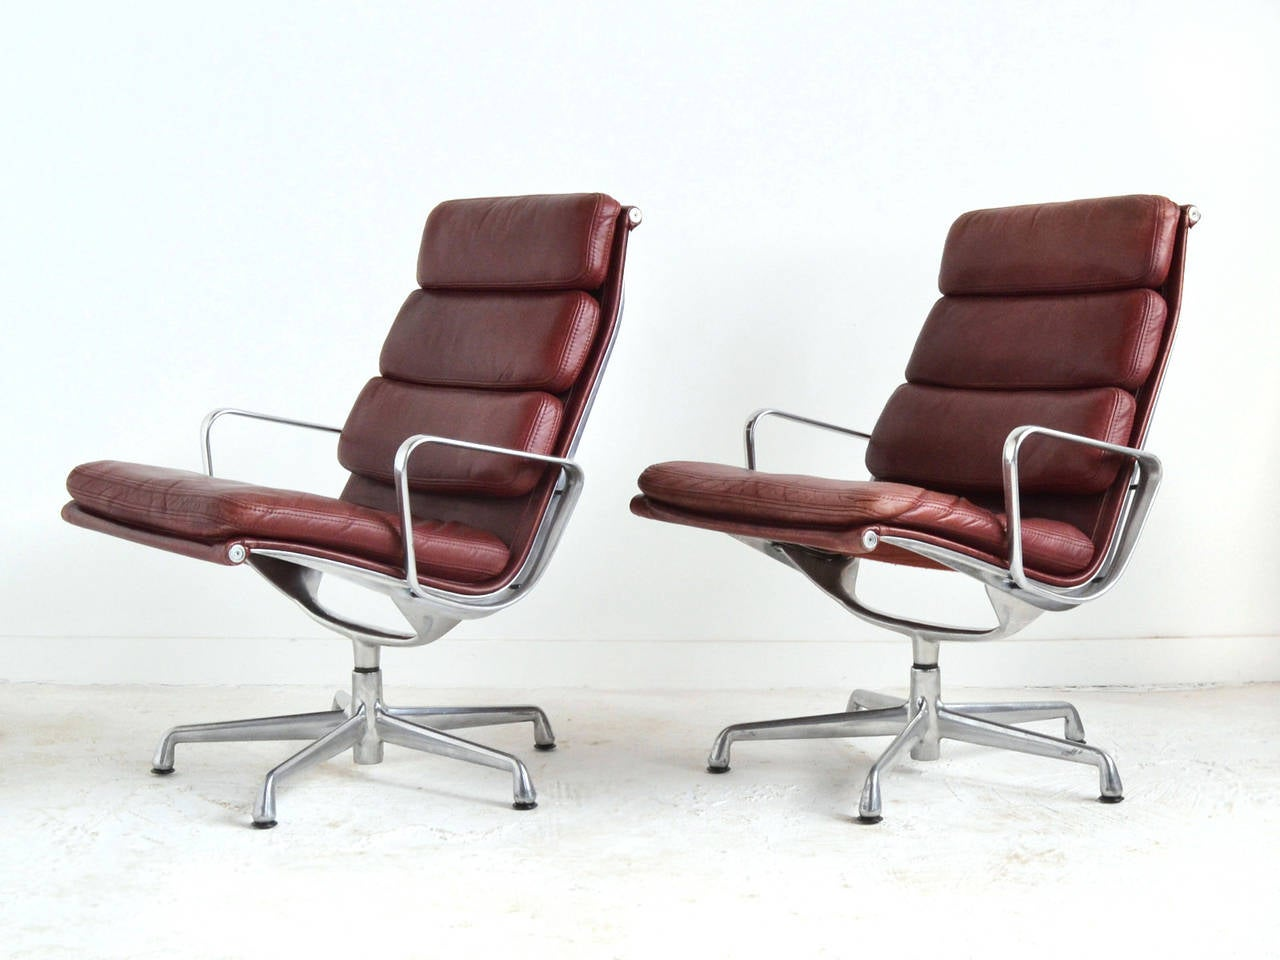 Eames Soft Pad Lounge Chair eames soft pad lounge chairsherman miller for sale at 1stdibs